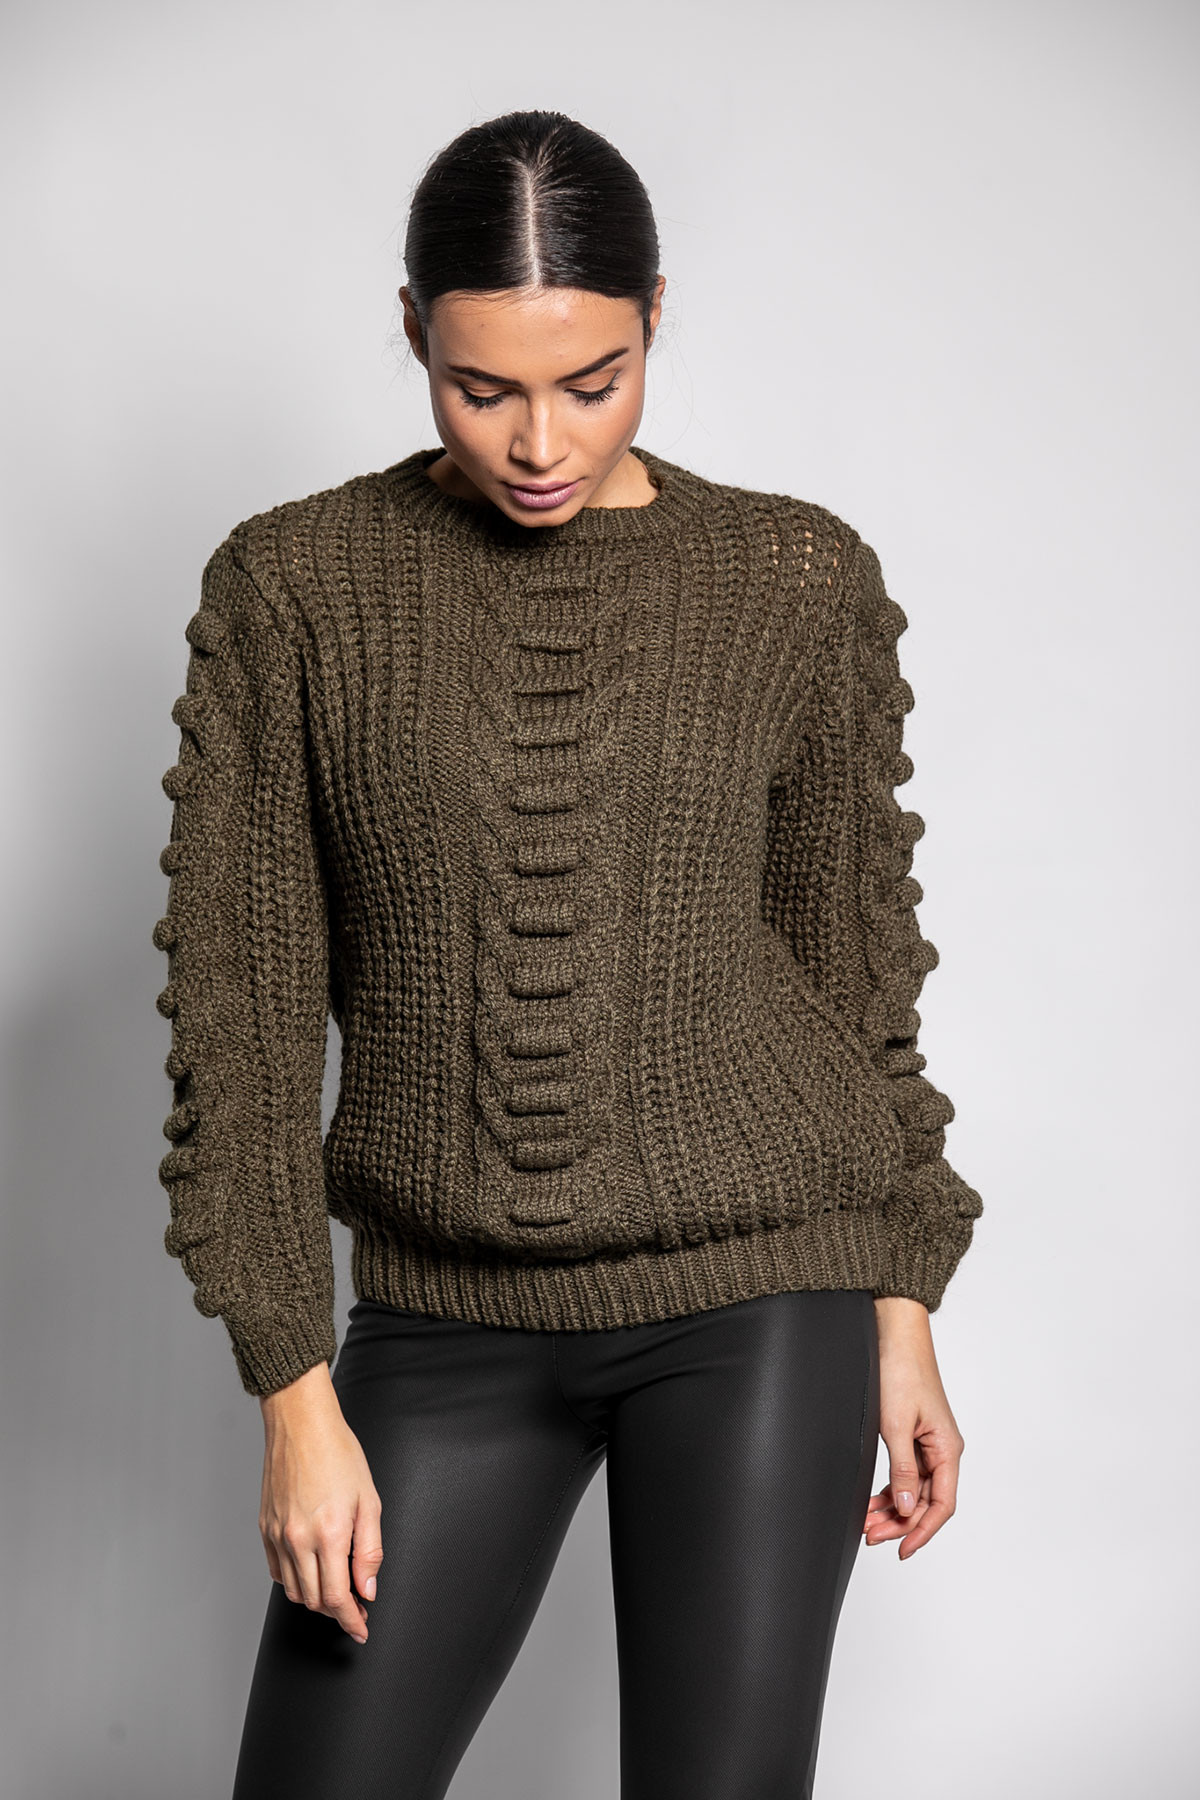 OLIVE GREEN SOFT KNITTED BLOUSE